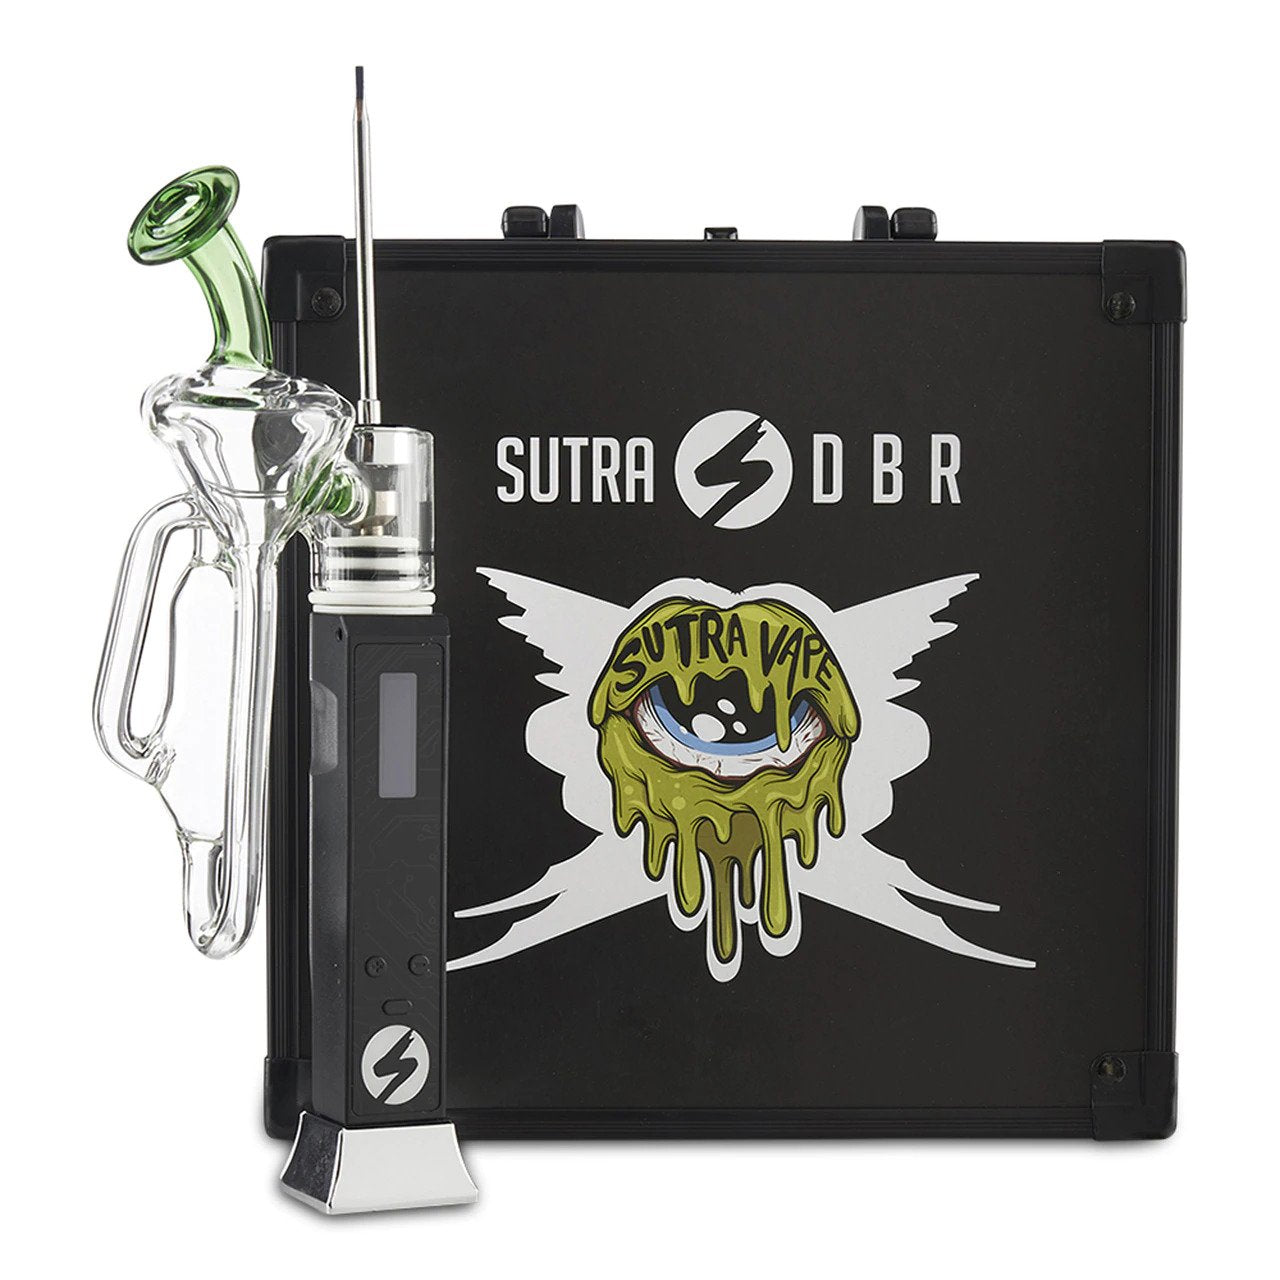 SUTRA DBR PORTABLE E-NAIL KIT